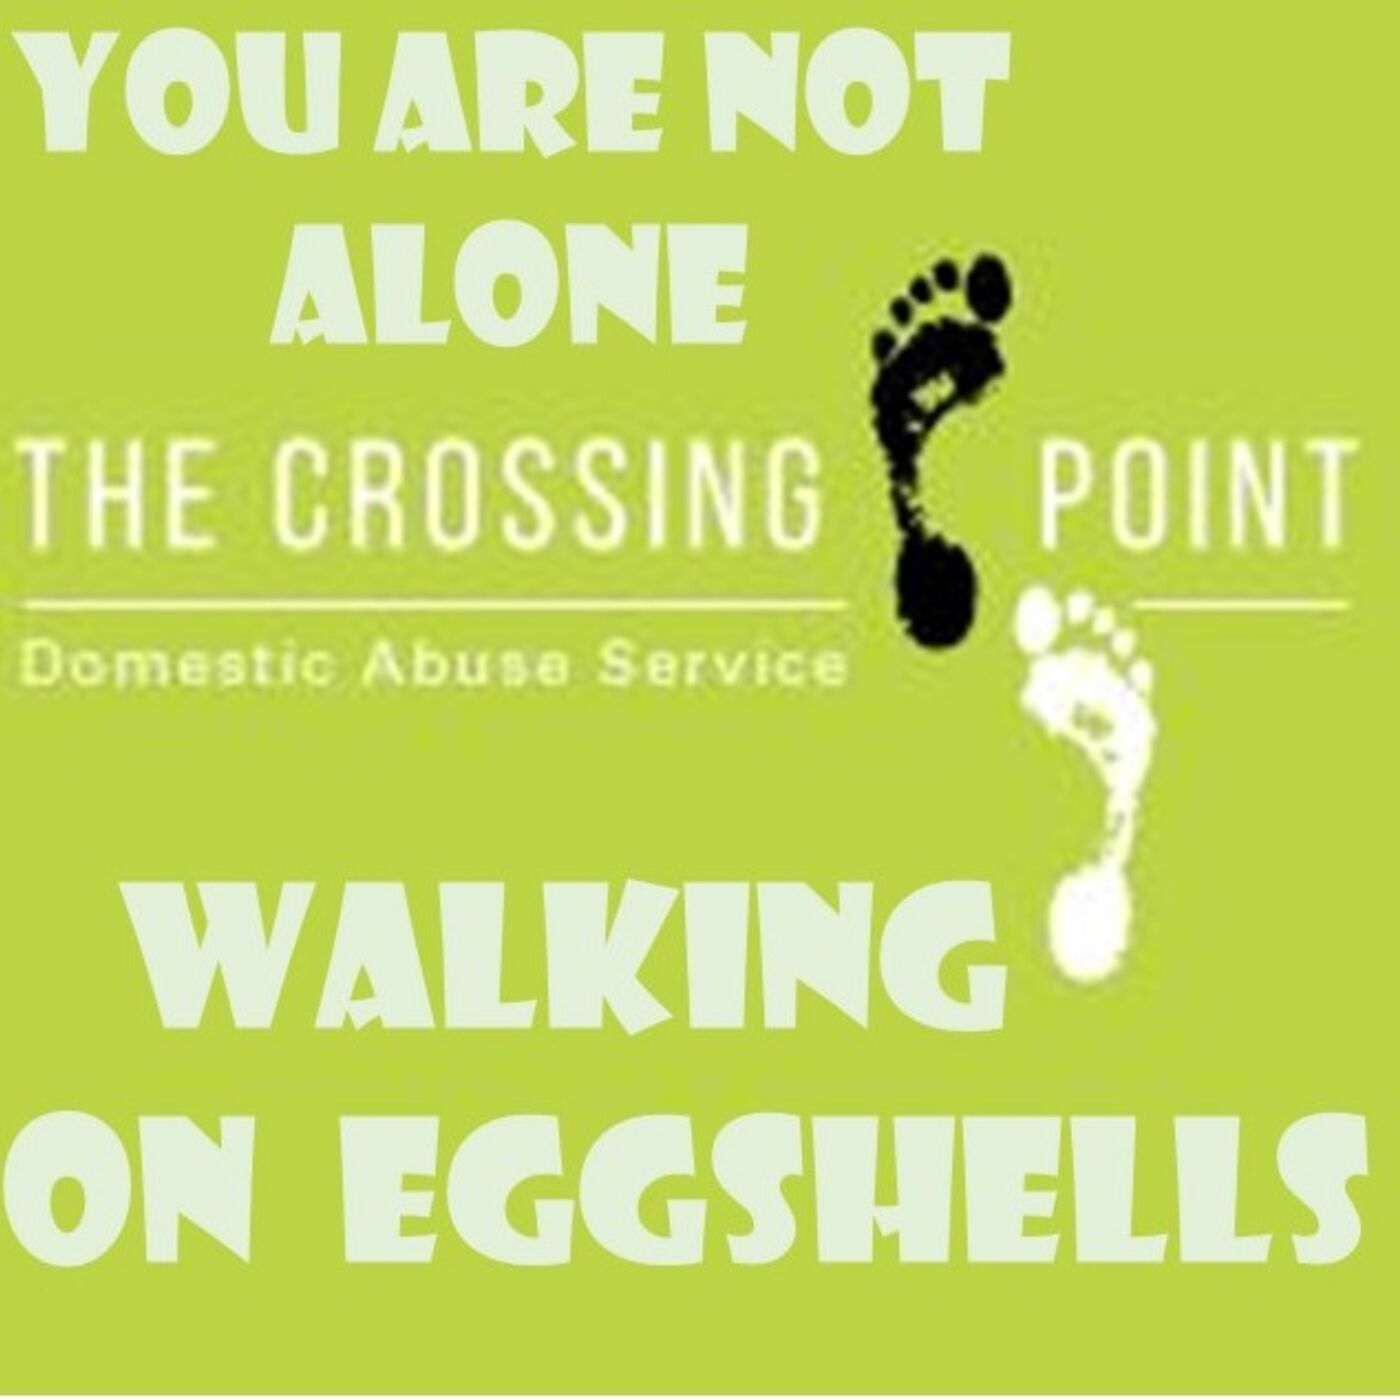 Crossing Point - 29 walking on eggshells (help and hope), October 2020